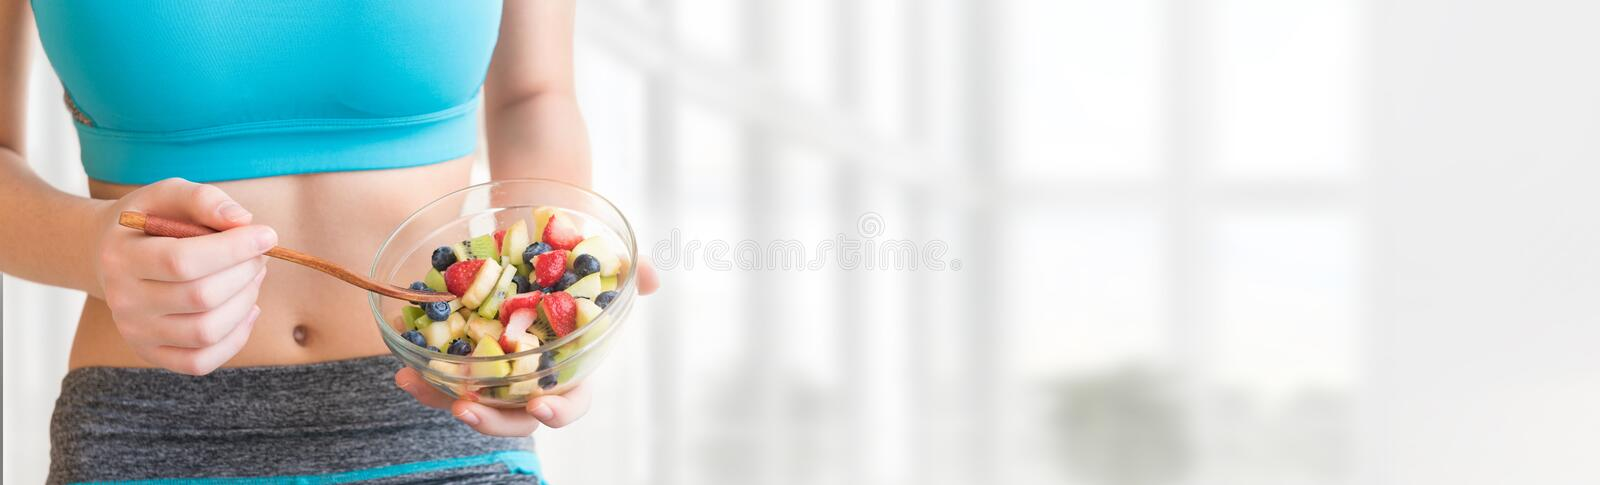 Young woman eating a healthy fruit salad after workout. stock photo